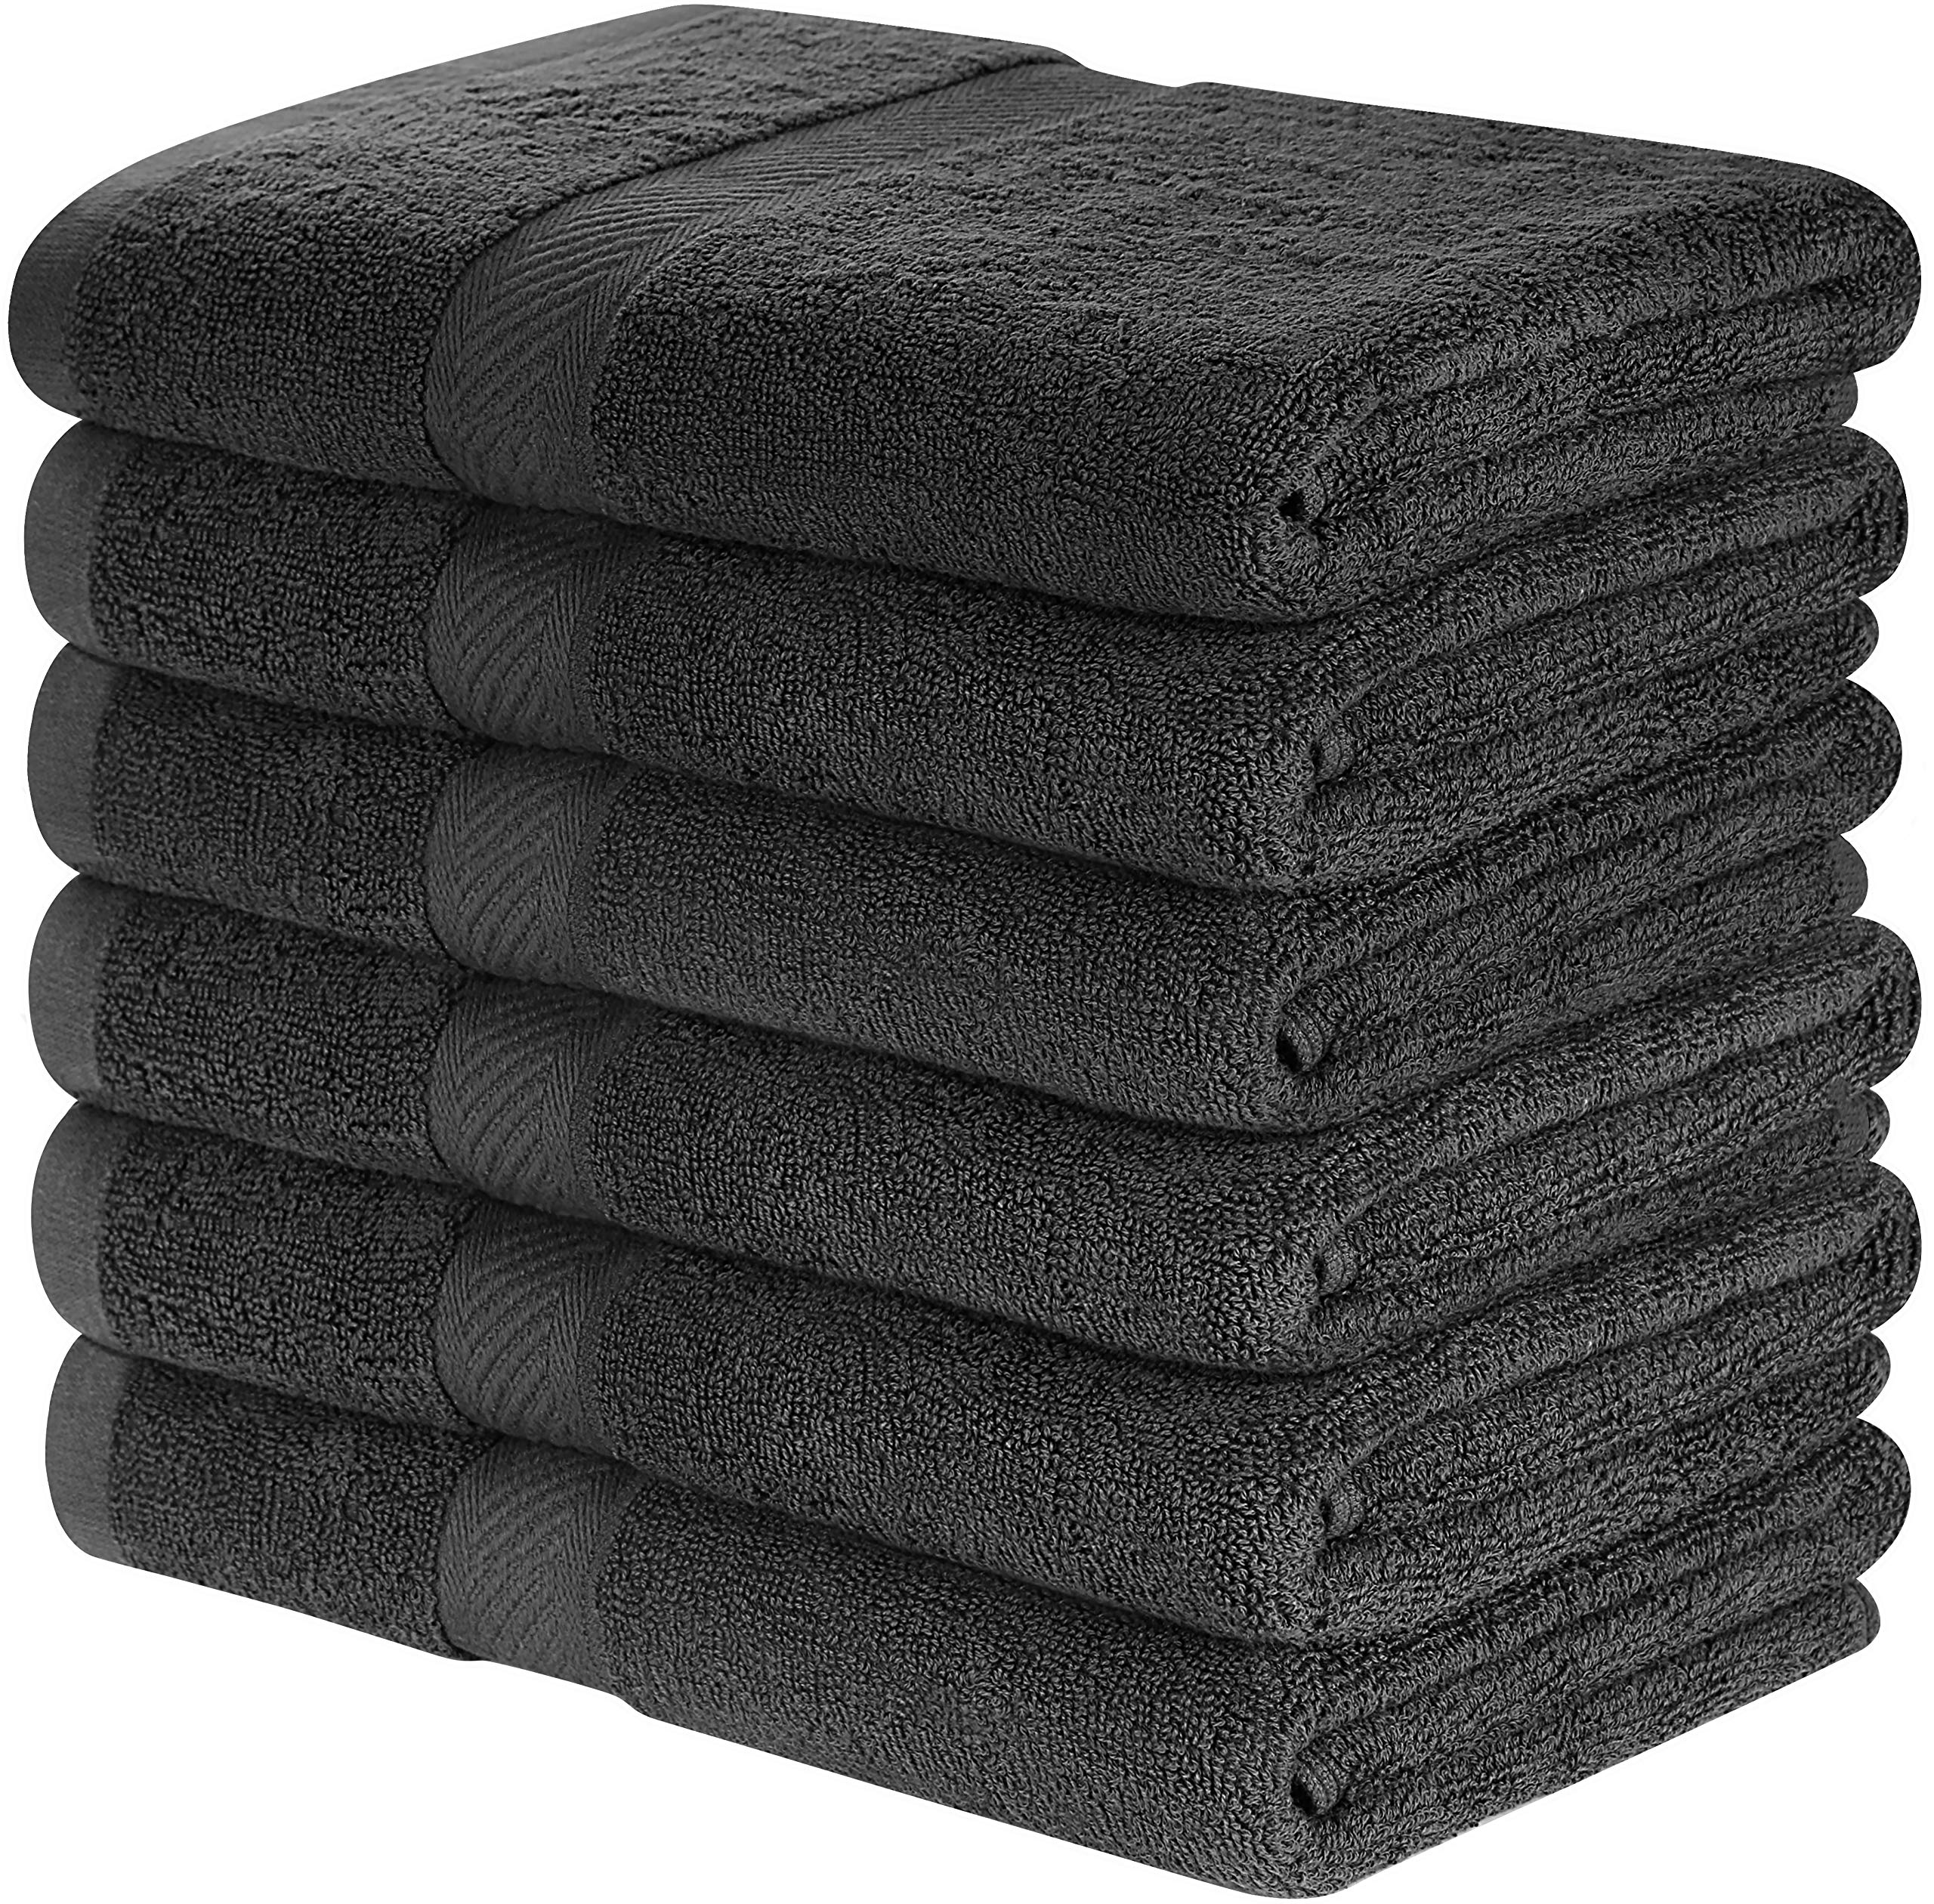 Utopia Towels Cotton Bath Towels (6 Pack, 24 x 48 Inch) - Lightweight Multipurpose Pool Gym Towels Quick Drying Towel - Grey